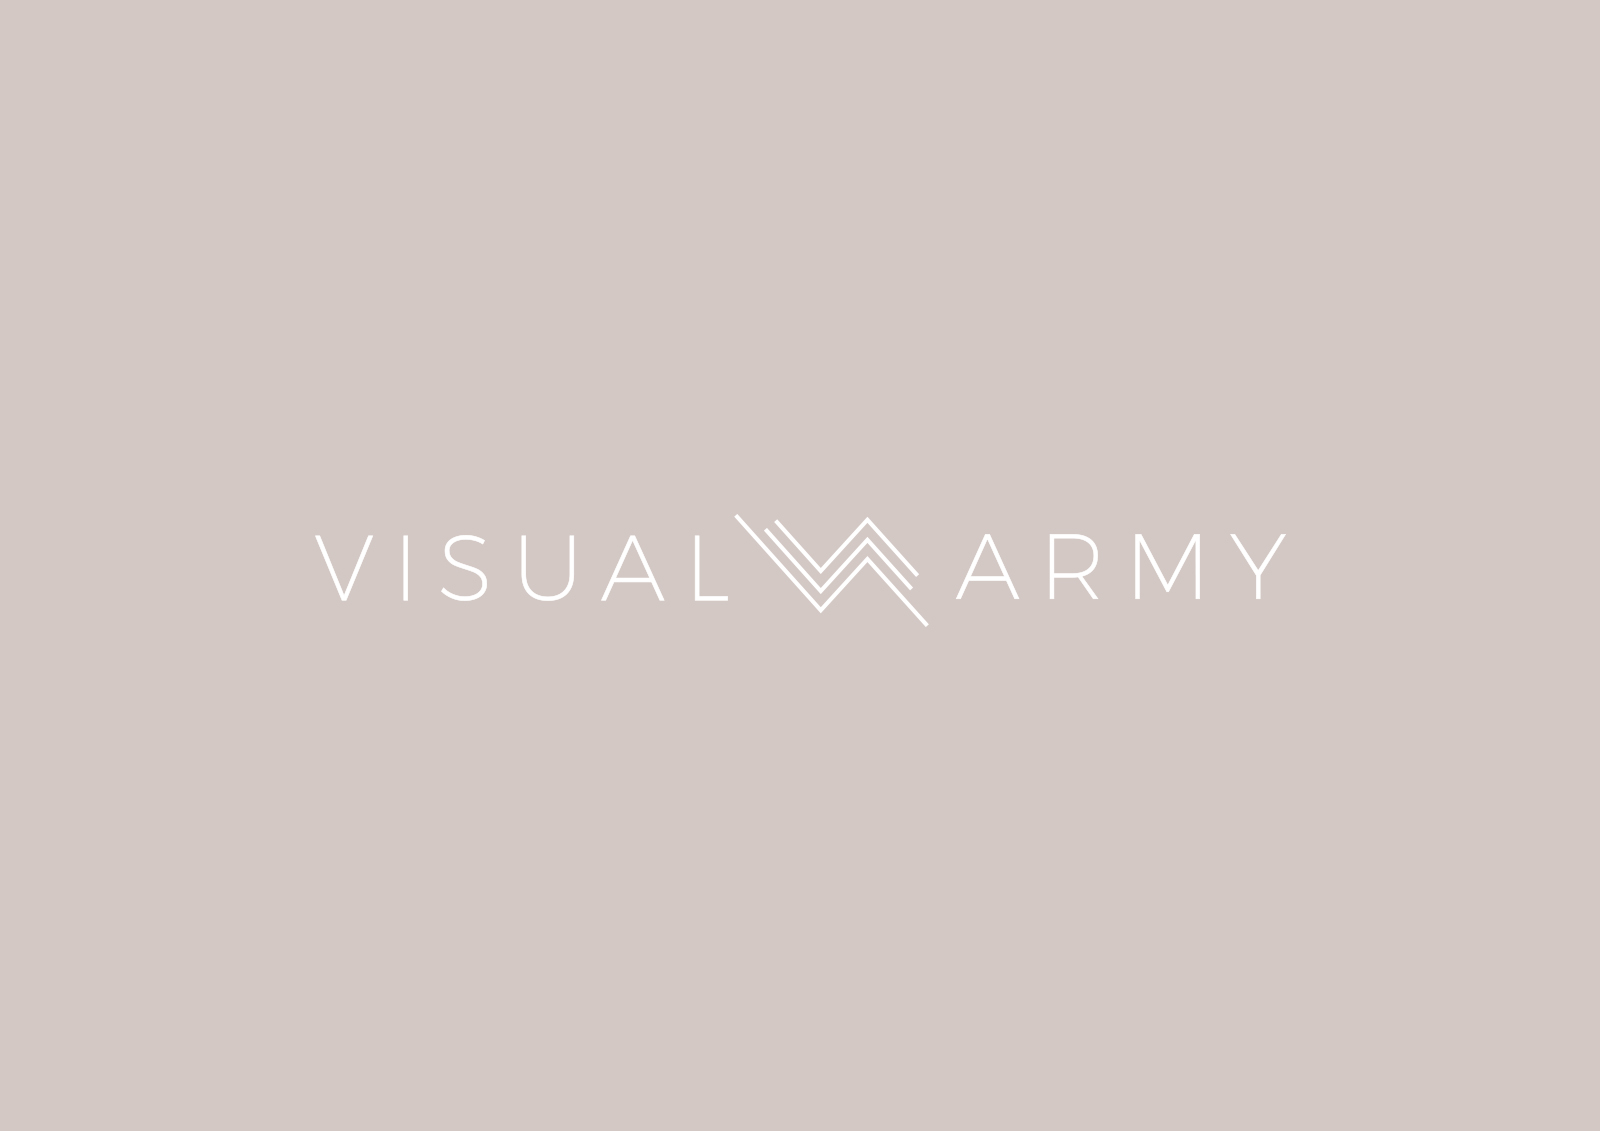 VisualArmy secondary logo on marble background